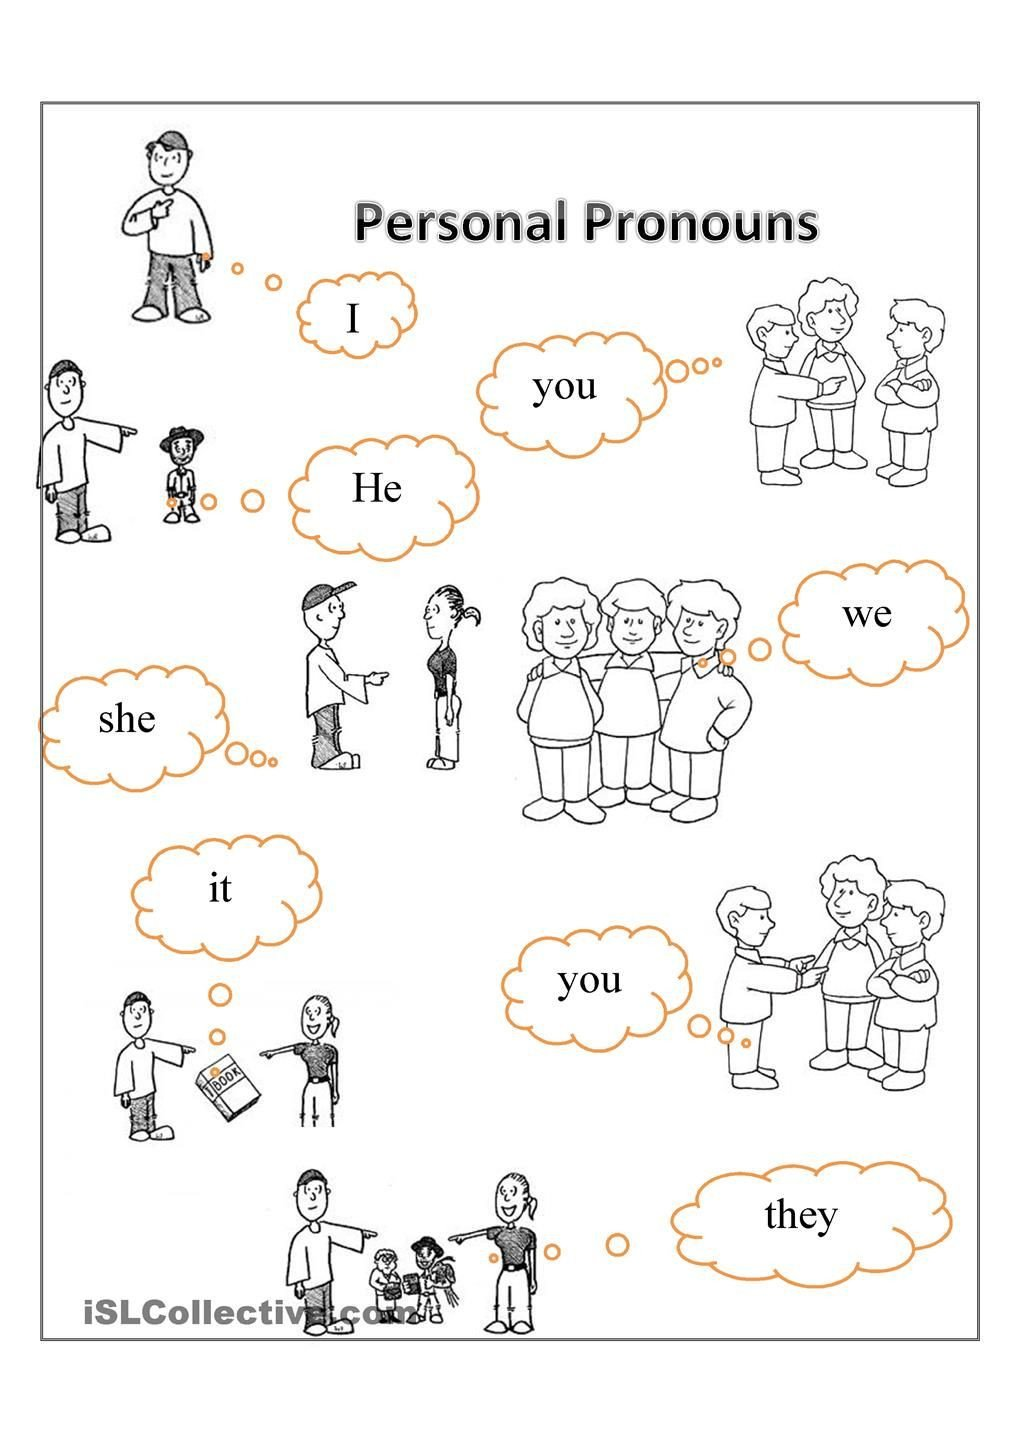 Pronoun Worksheets for Kindergarten Free Personal Pronouns